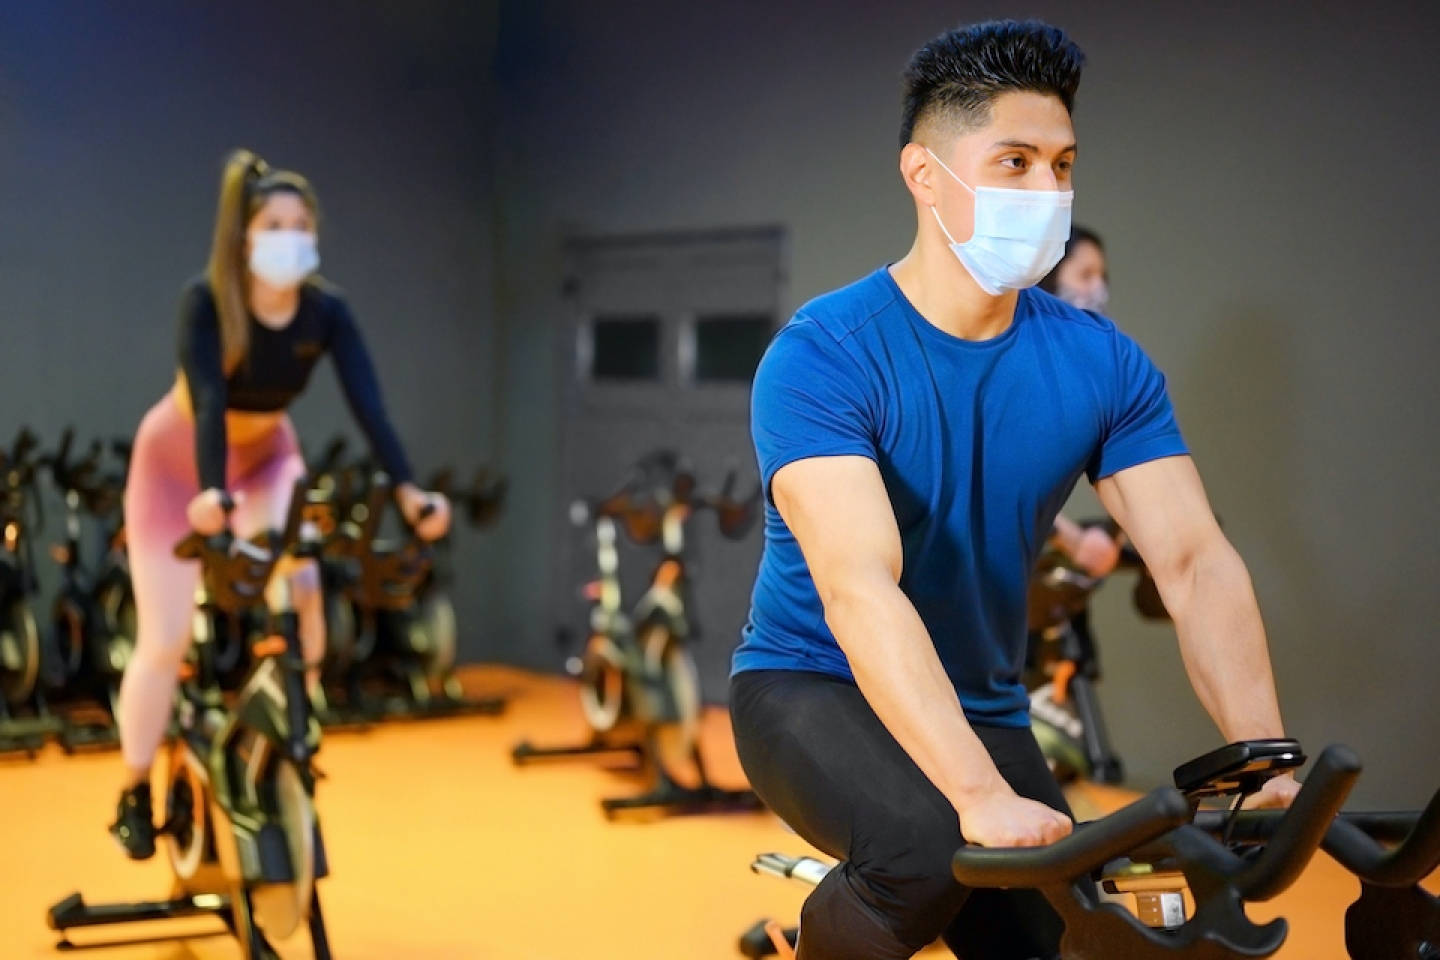 exercising with mask on at the gym